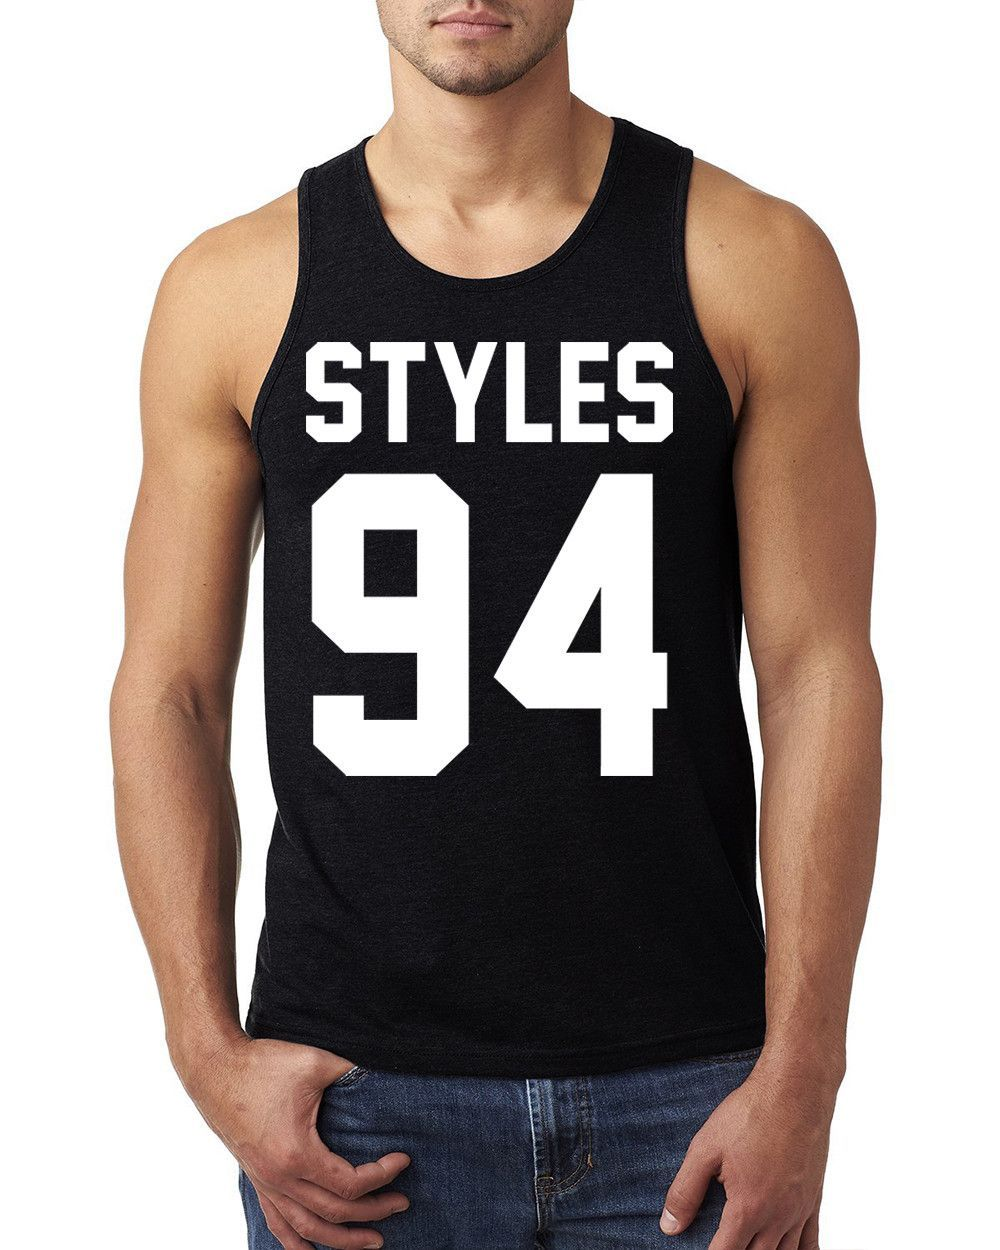 #Styles94  #styles #1d  #onedirection #directioner